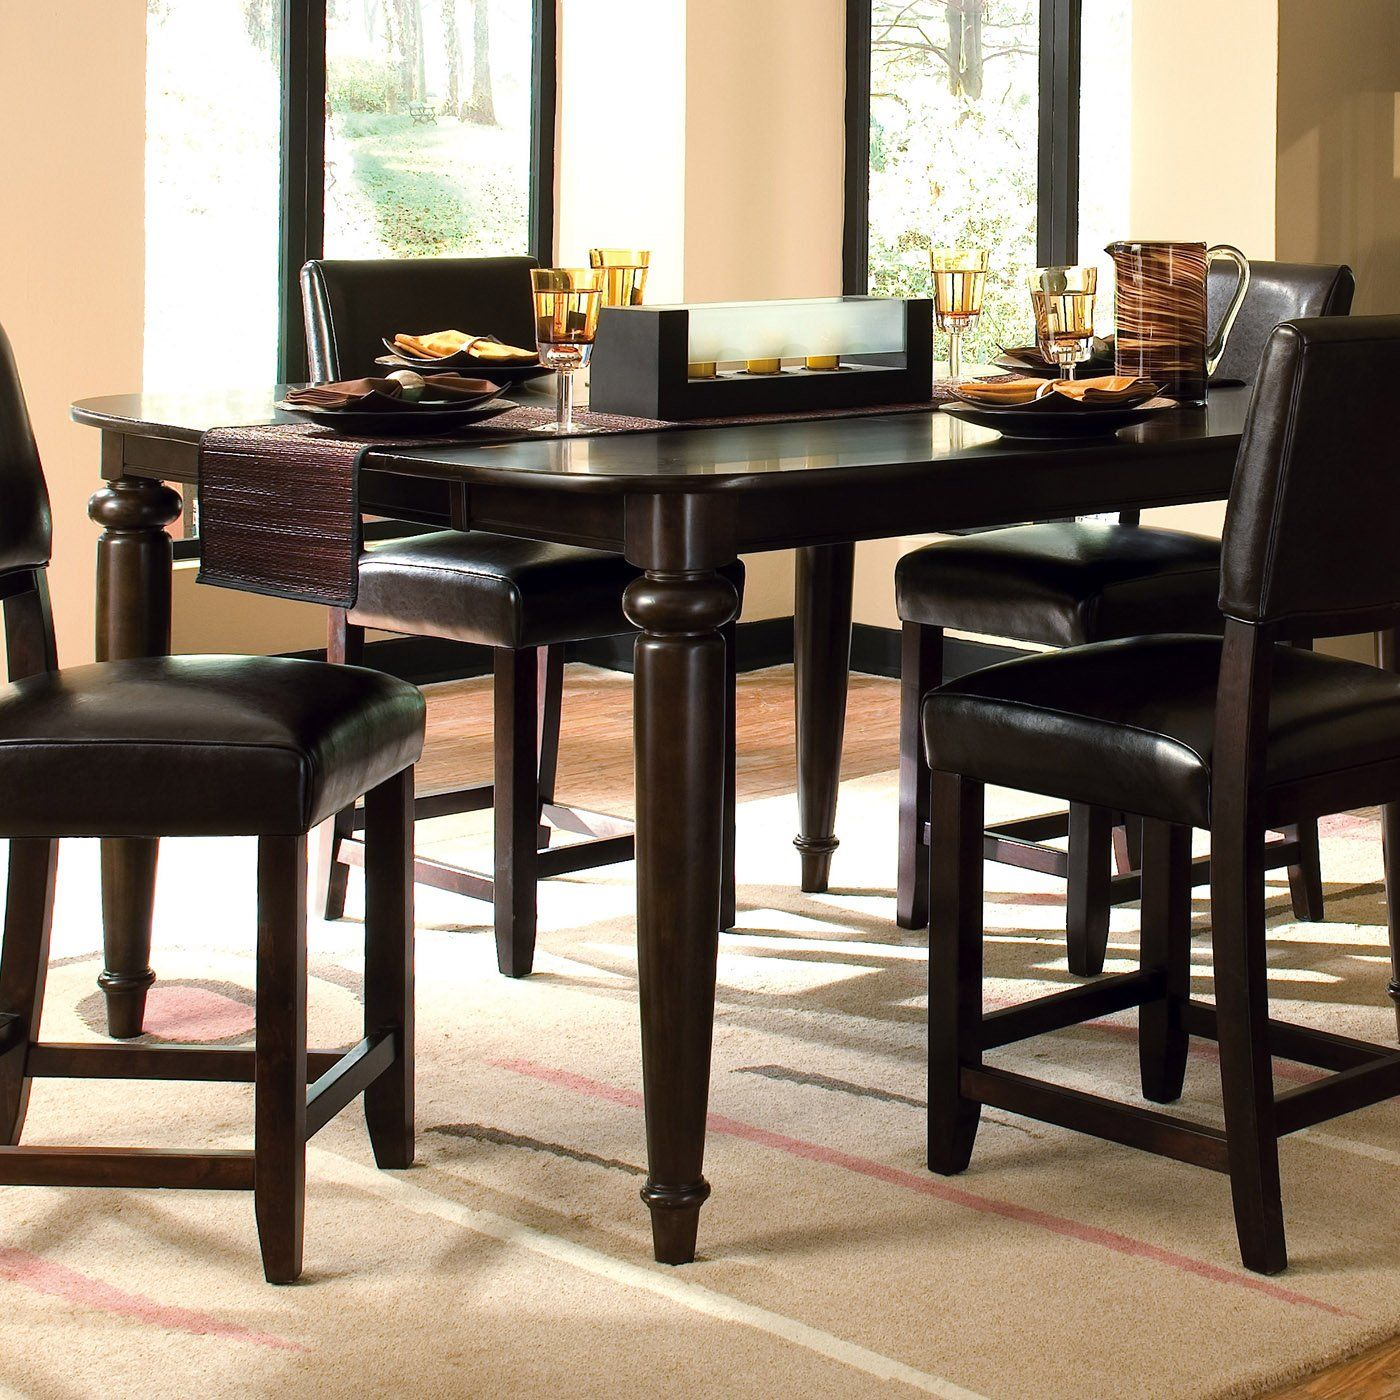 Somerset Tall Table W 4 Leather Chairs By Kincaid Furniture